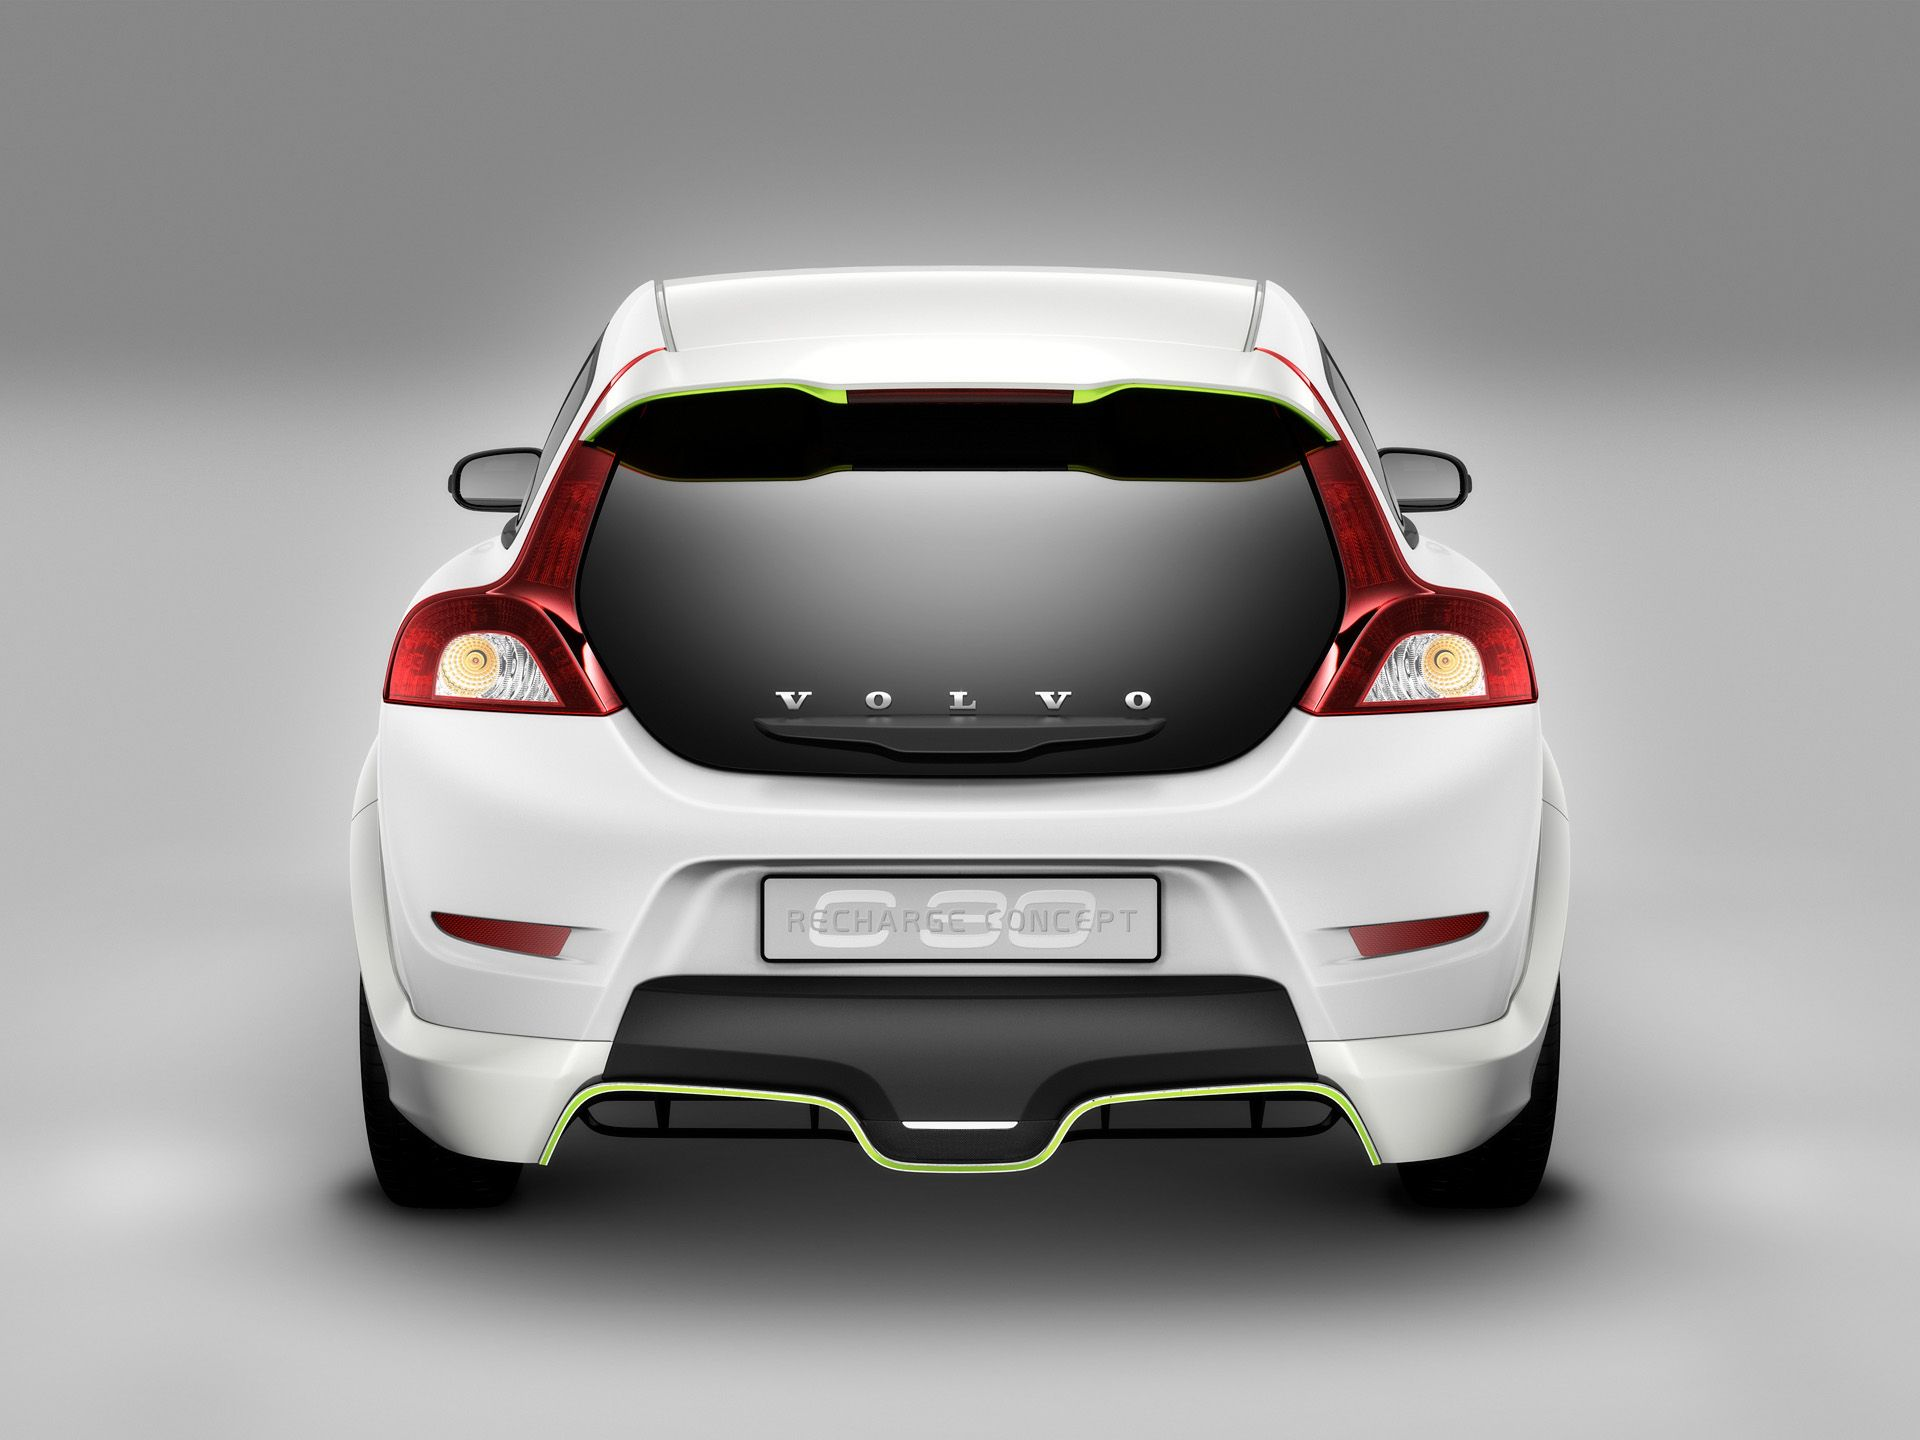 28a3da510bc94cfab9eb3b3e9bfe9bef Great Description About Volvo C30 R Design with Interesting Gallery Cars Review